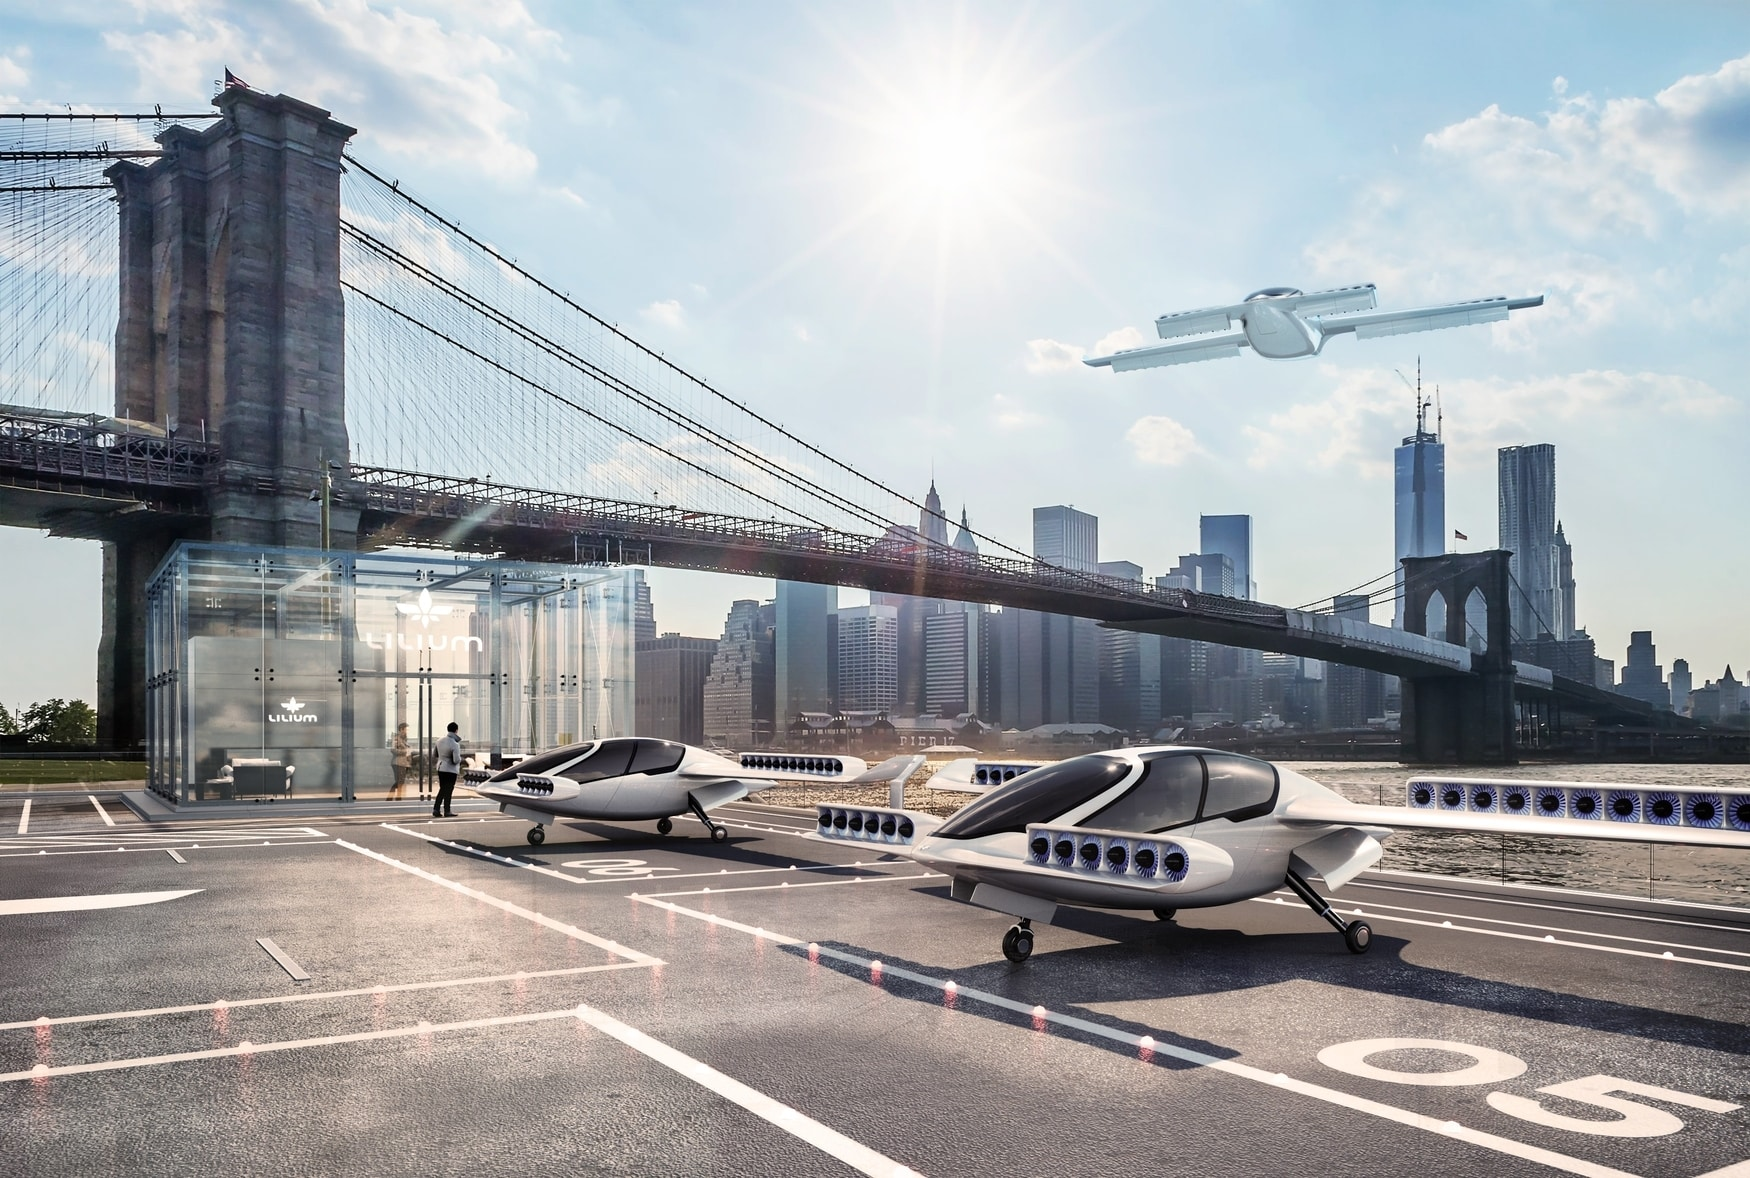 Sky's the Limit: Lilium, a Flying Car Company, Raises $90 Million